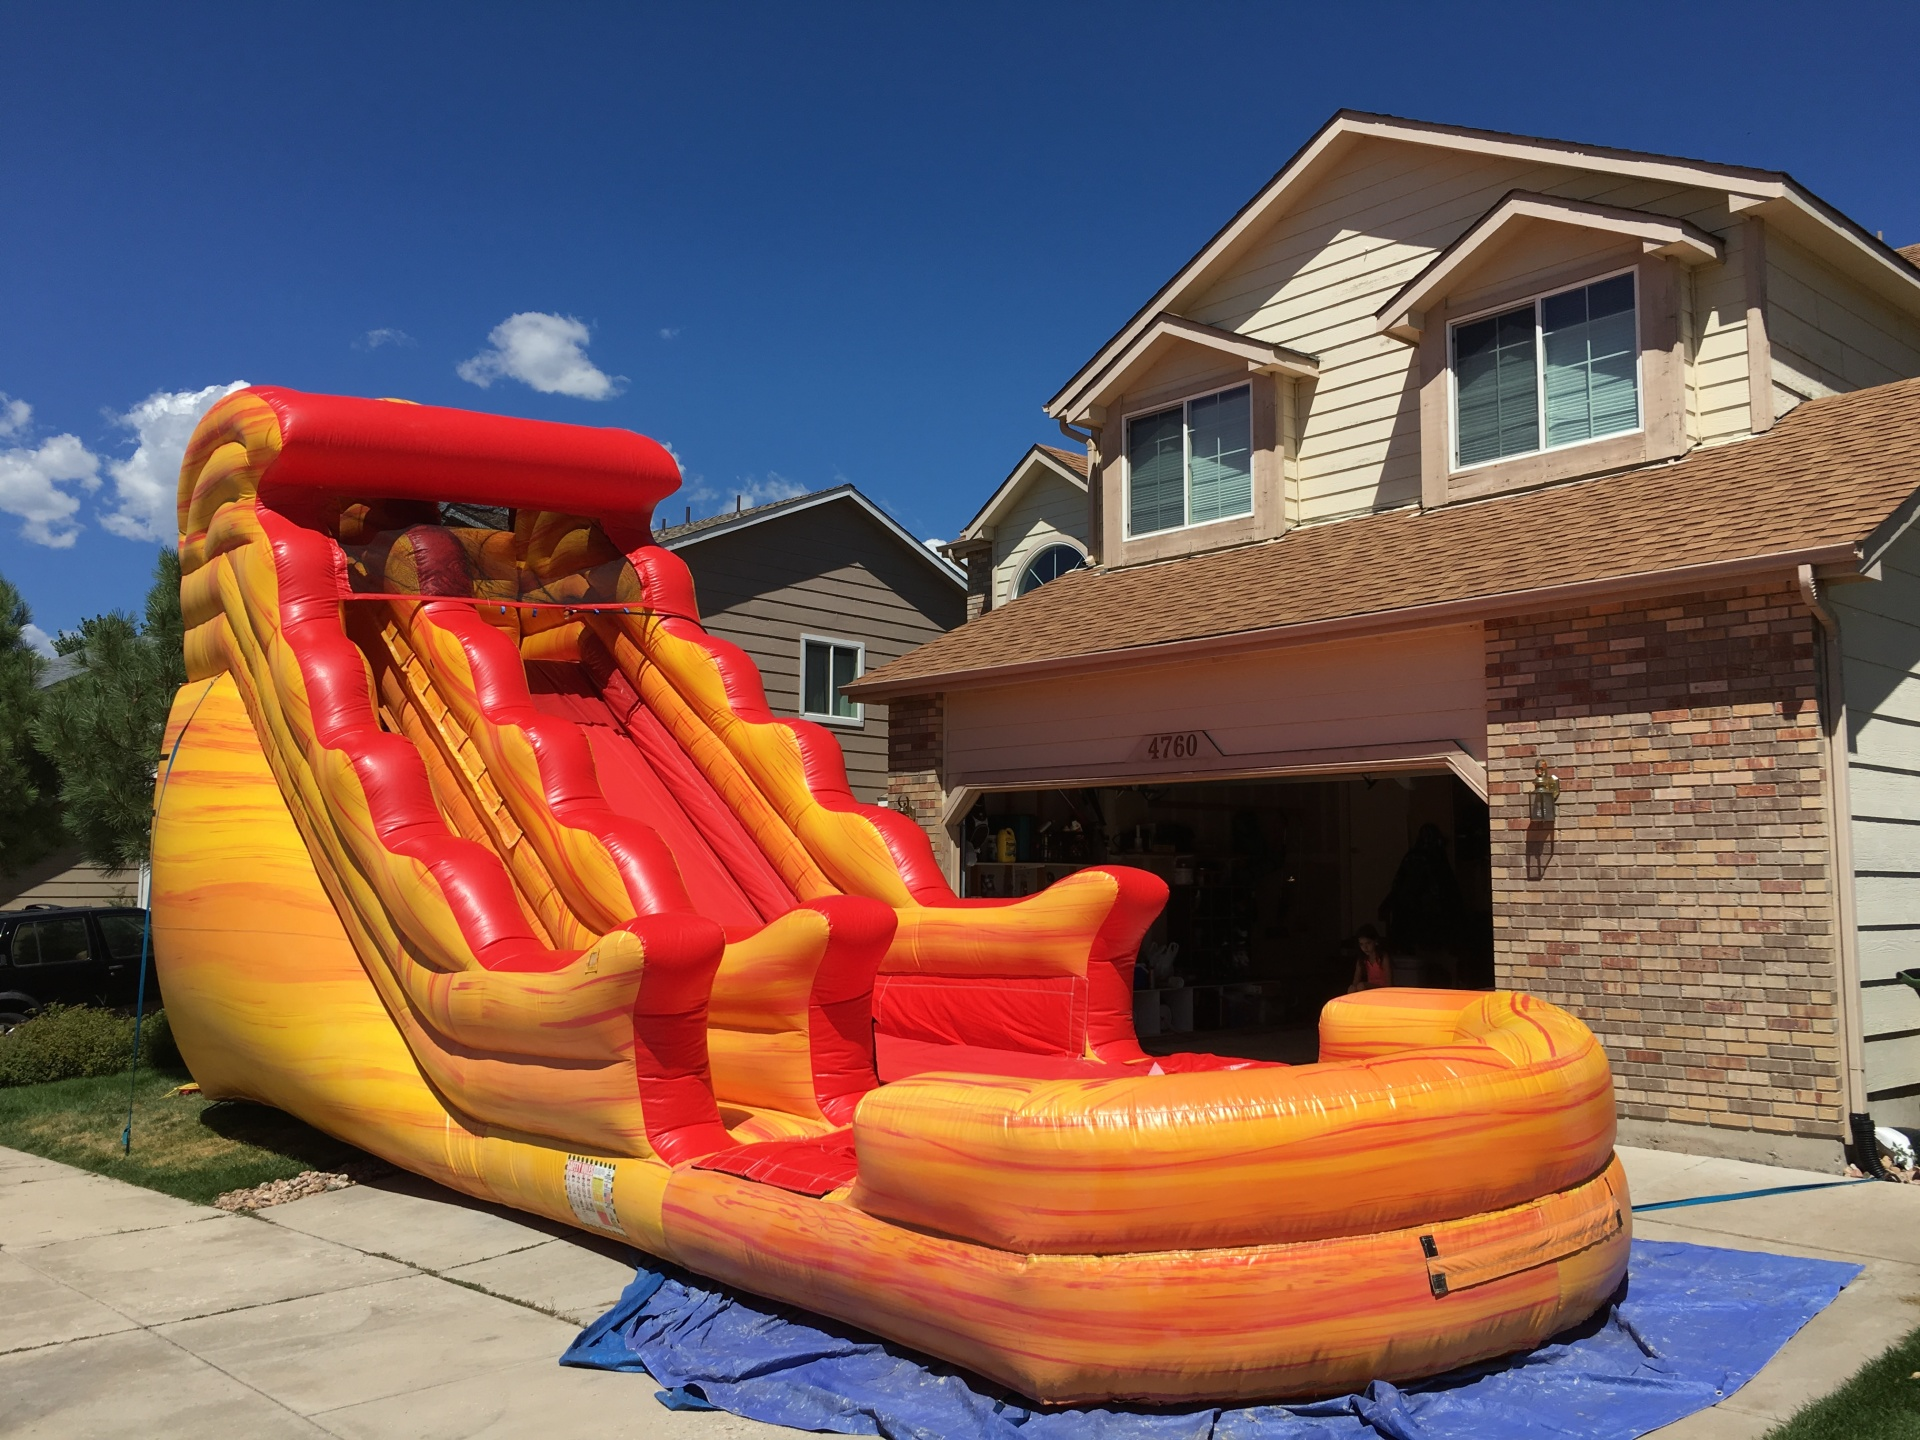 water slide for rent colorado springs, fountain colorado water slide rental, resbaladilla de agua de renta colorado springs